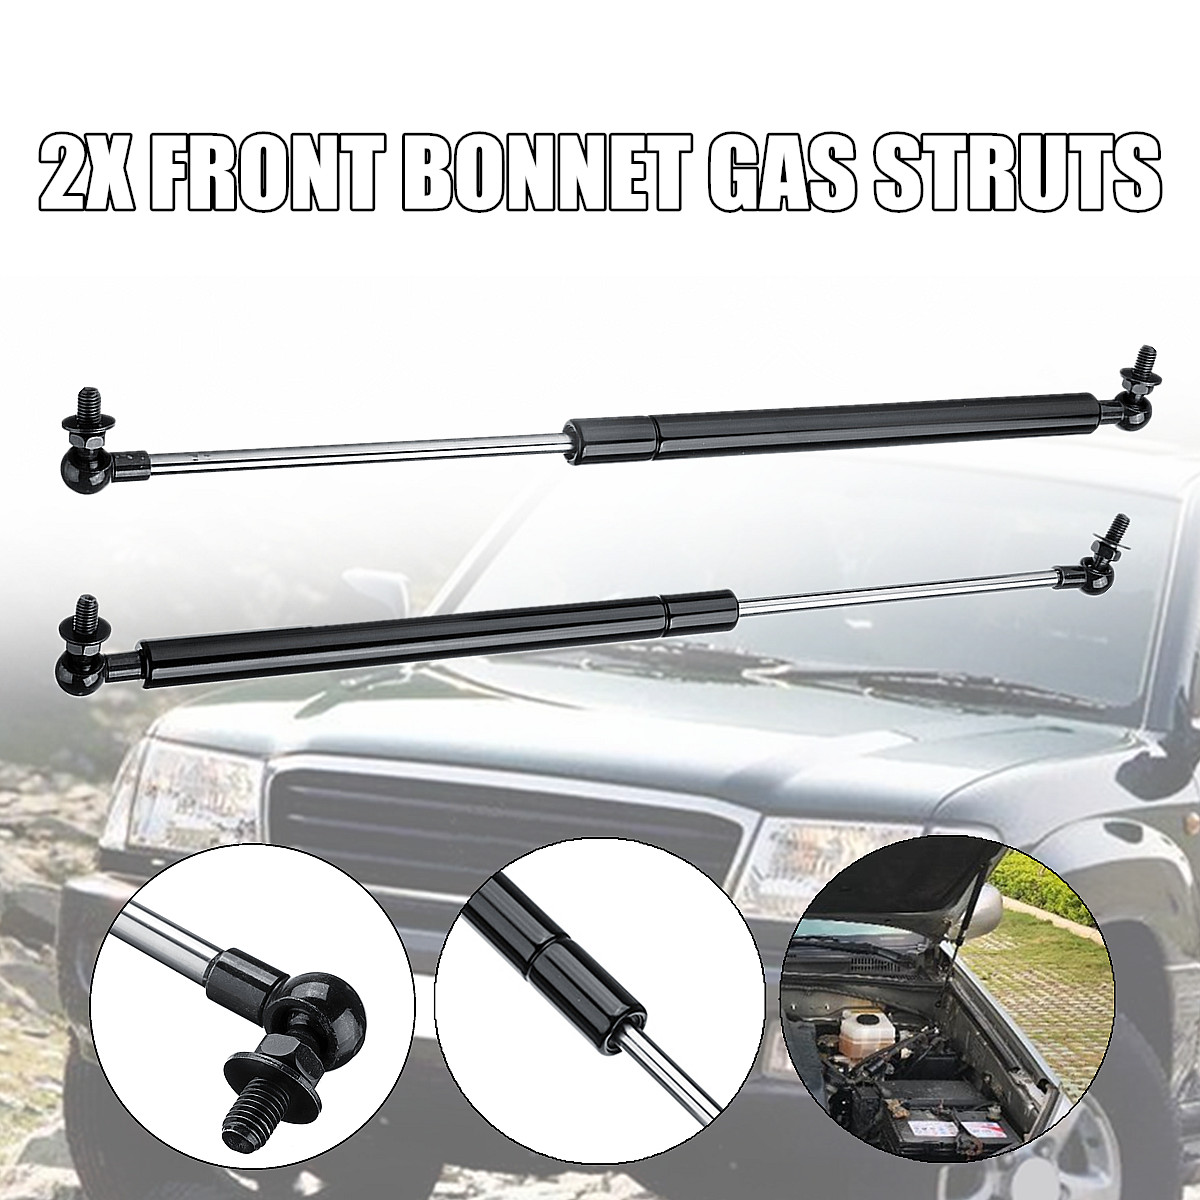 Fit for Toyota Land Cruiser 100 Series 98-07 2xFront Bonnet Gas Struts Support Steel 46cm Direct Fit Replacement Strut BarsFit for Toyota Land Cruiser 100 Series 98-07 2xFront Bonnet Gas Struts Support Steel 46cm Direct Fit Replacement Strut Bars